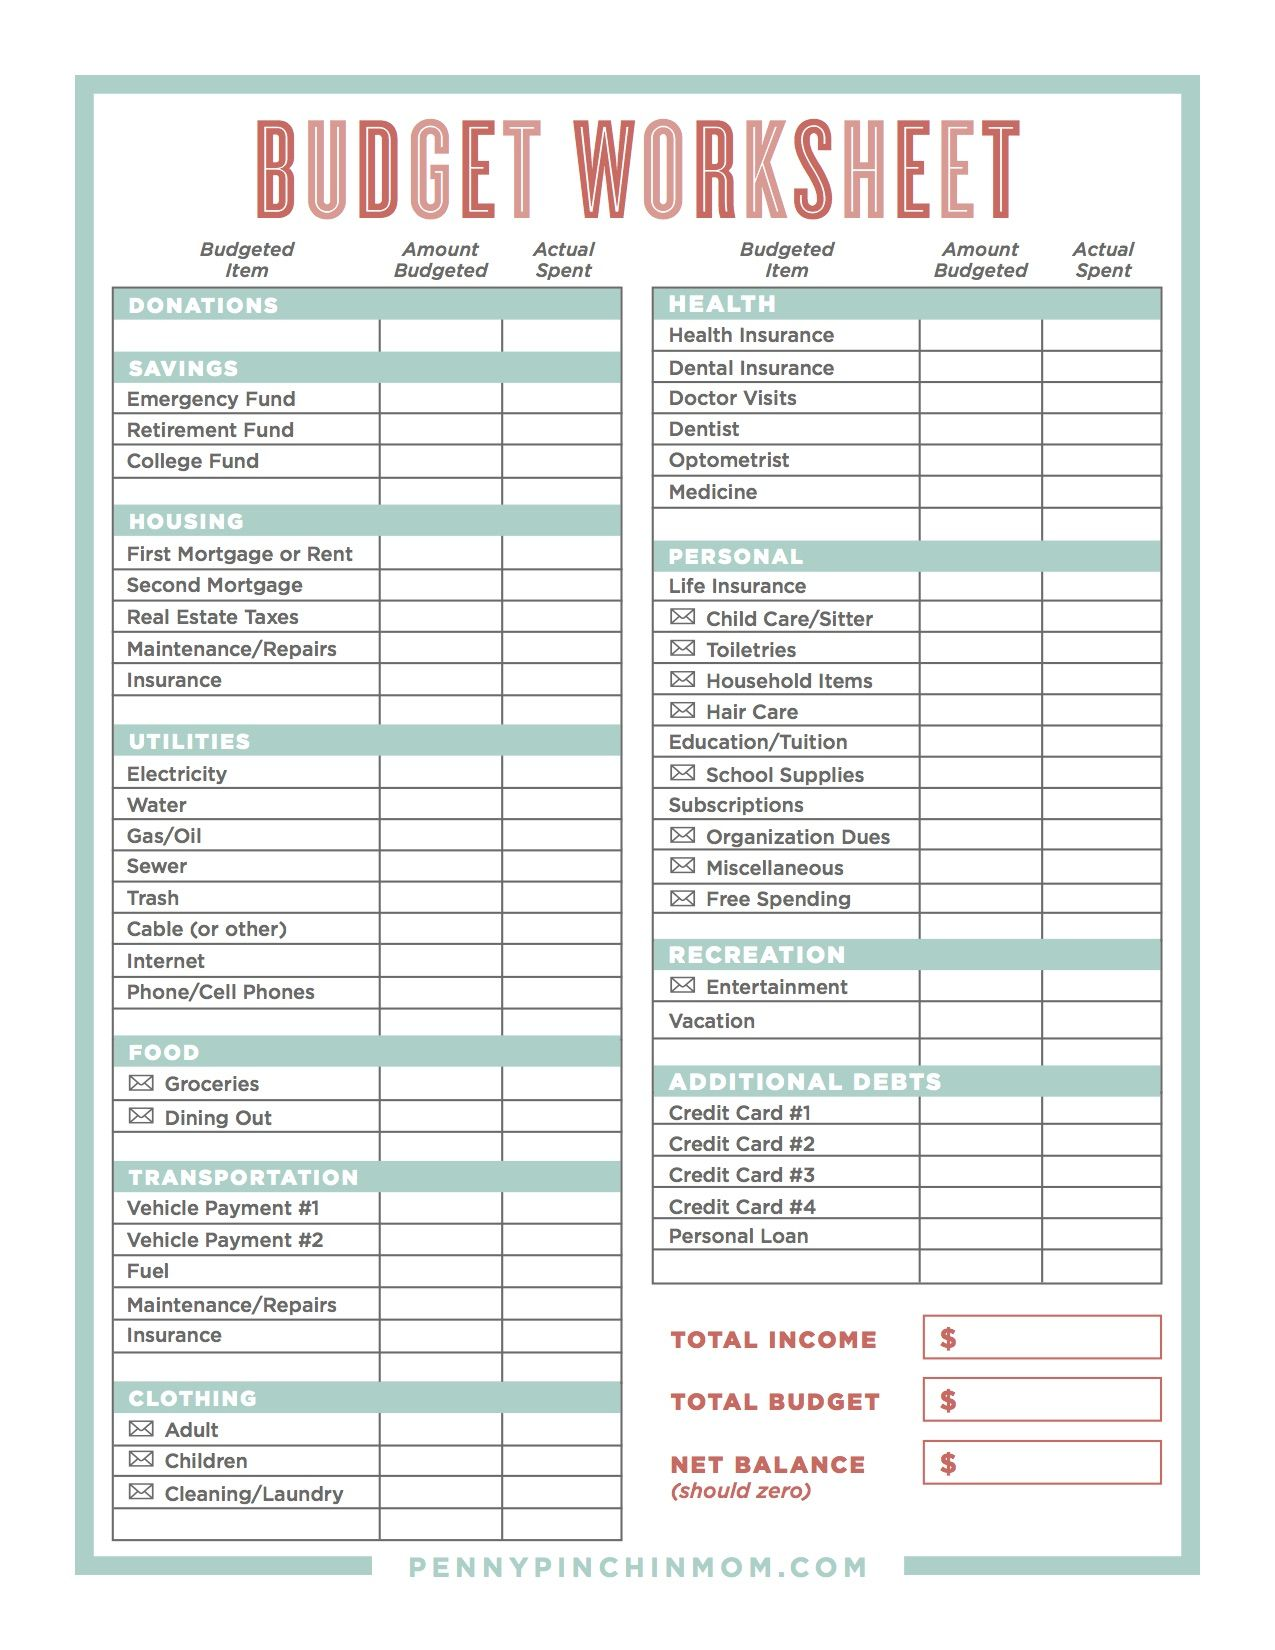 Worksheets How To Budget Money Worksheet best 25 budget spreadsheet ideas on pinterest excel bill template and template